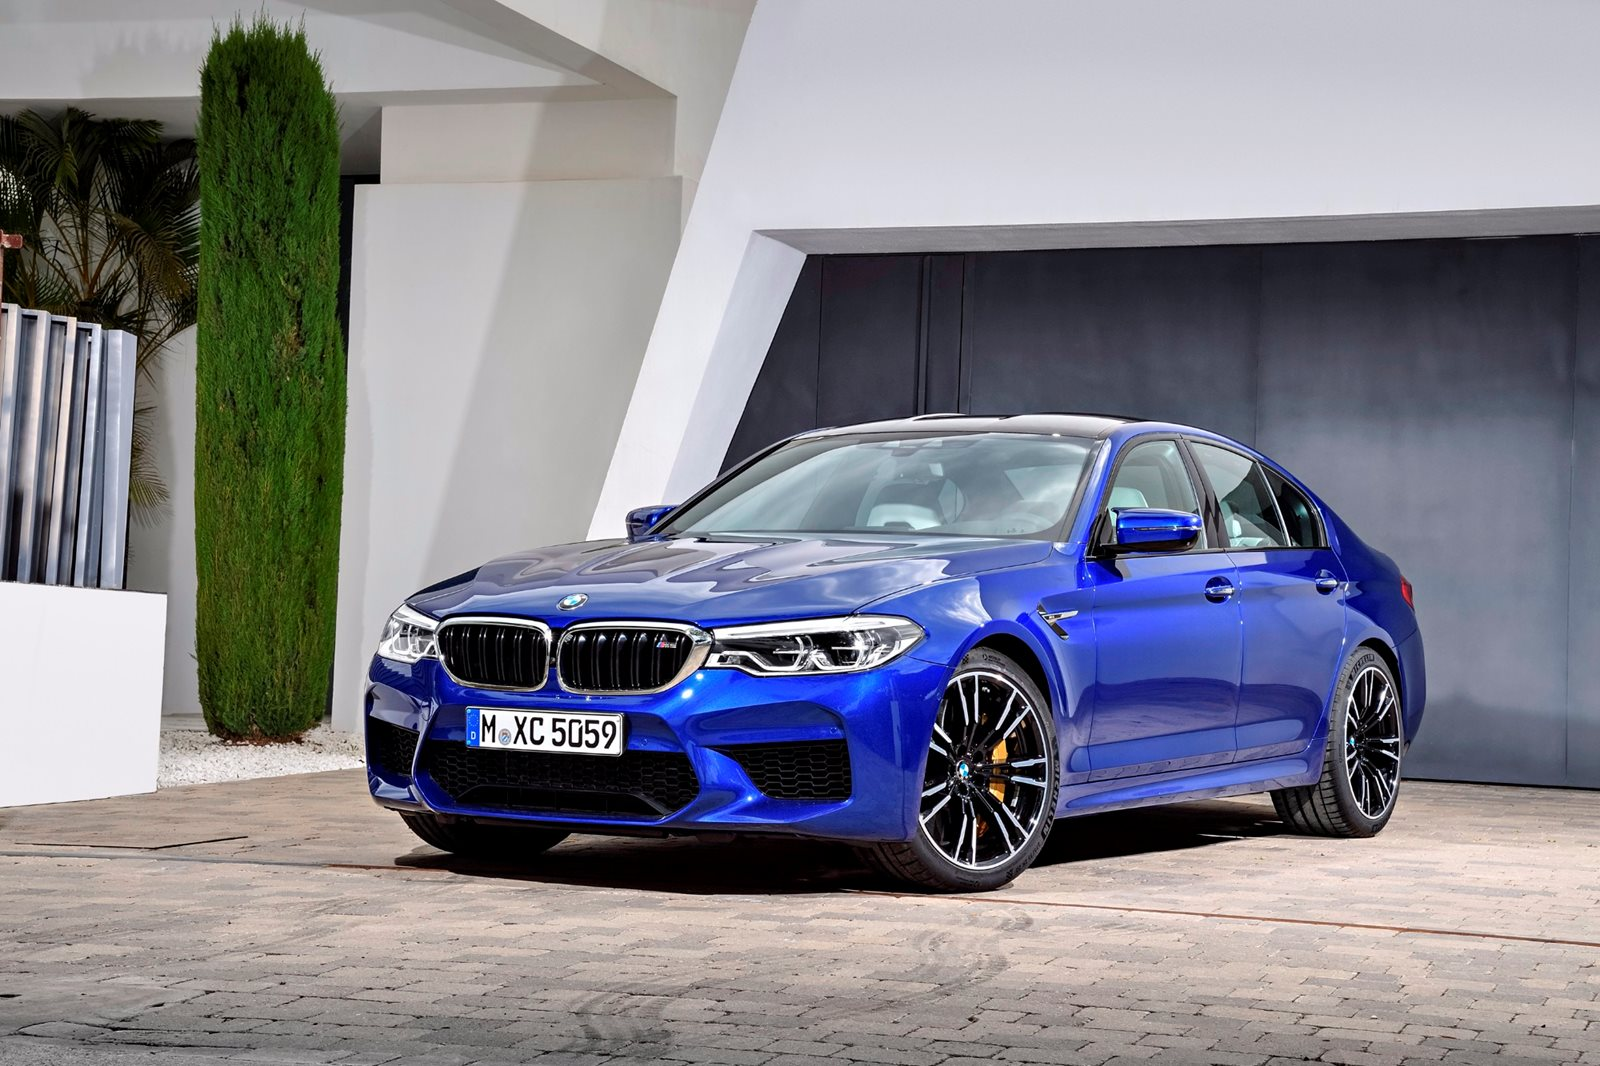 2020 Bmw M5 Sedan Review Trims Specs Price New Interior Features Exterior Design And Specifications Carbuzz